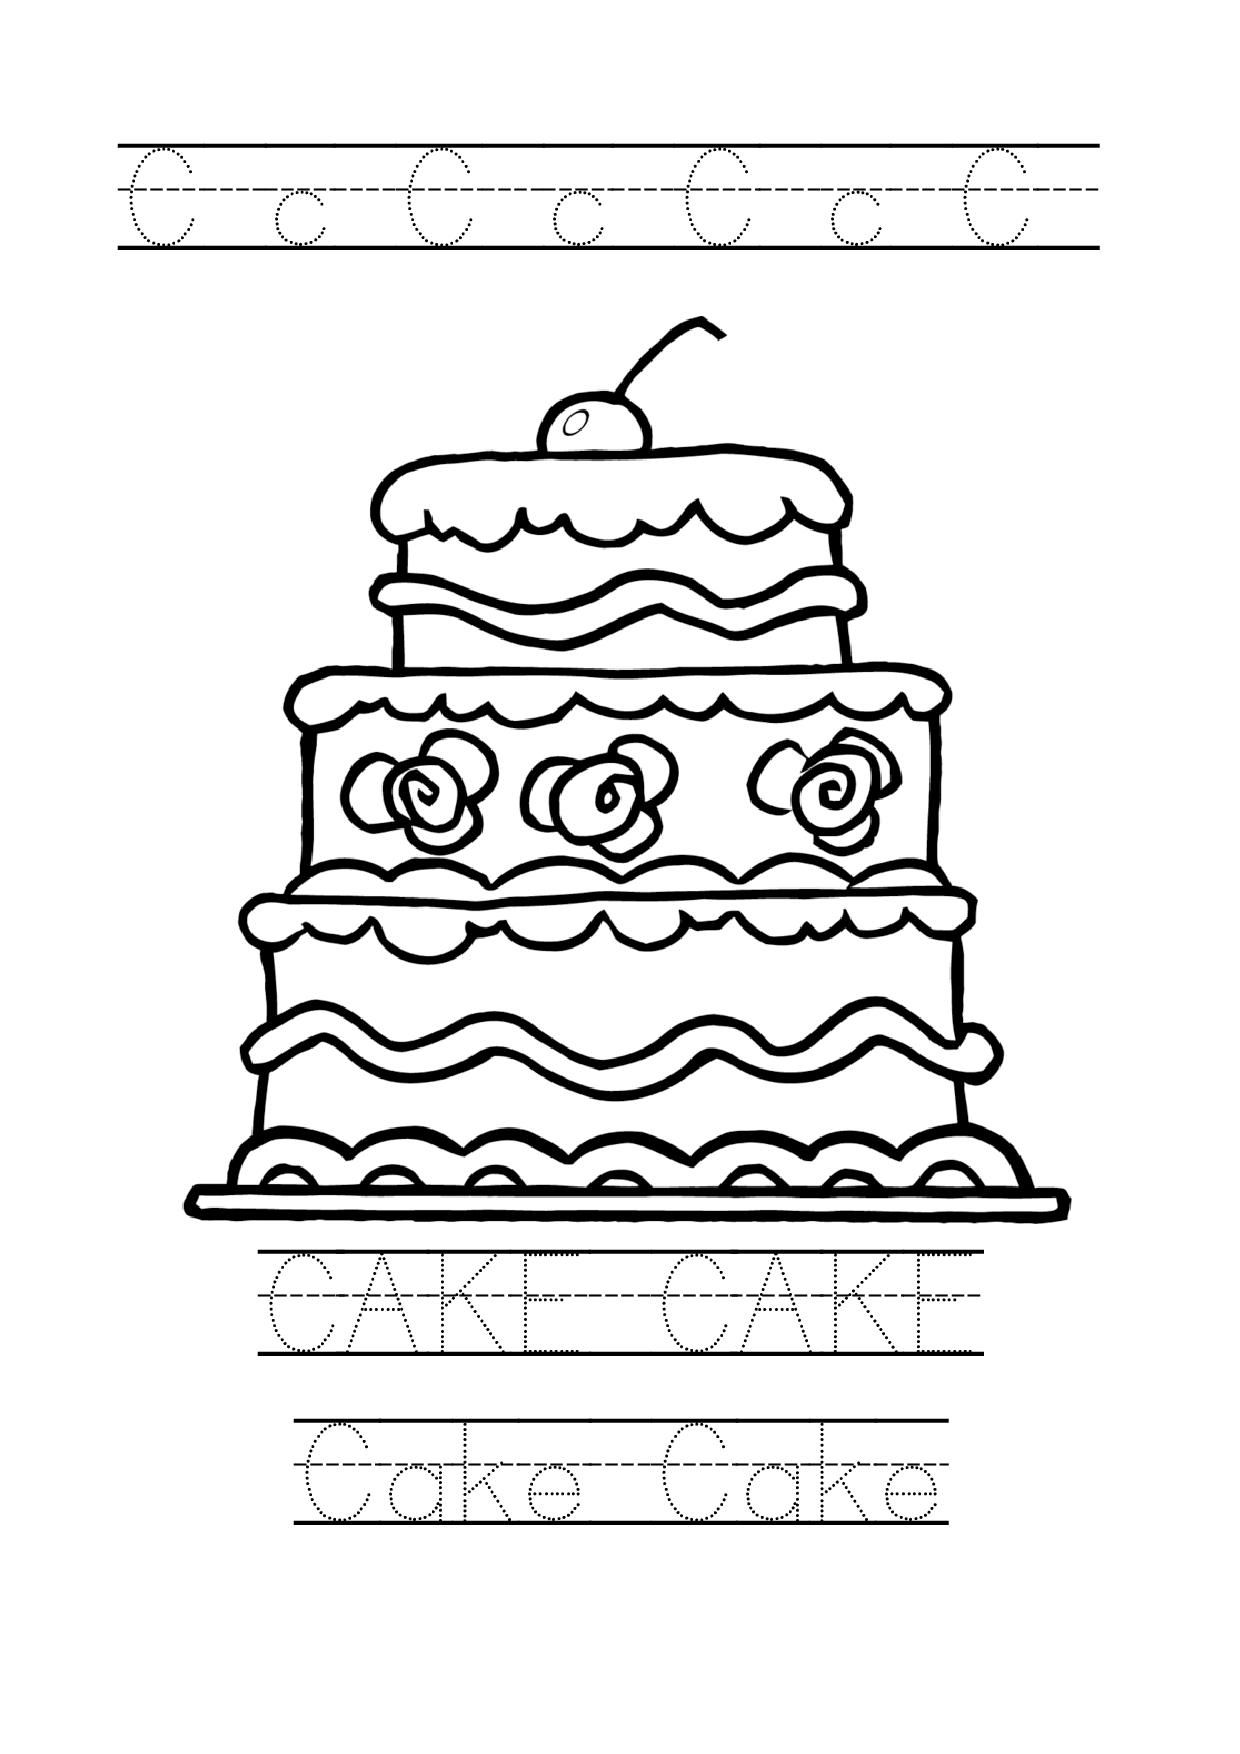 tracing word cake worksheet cake coloring page for preschool school ideas birthday cake. Black Bedroom Furniture Sets. Home Design Ideas